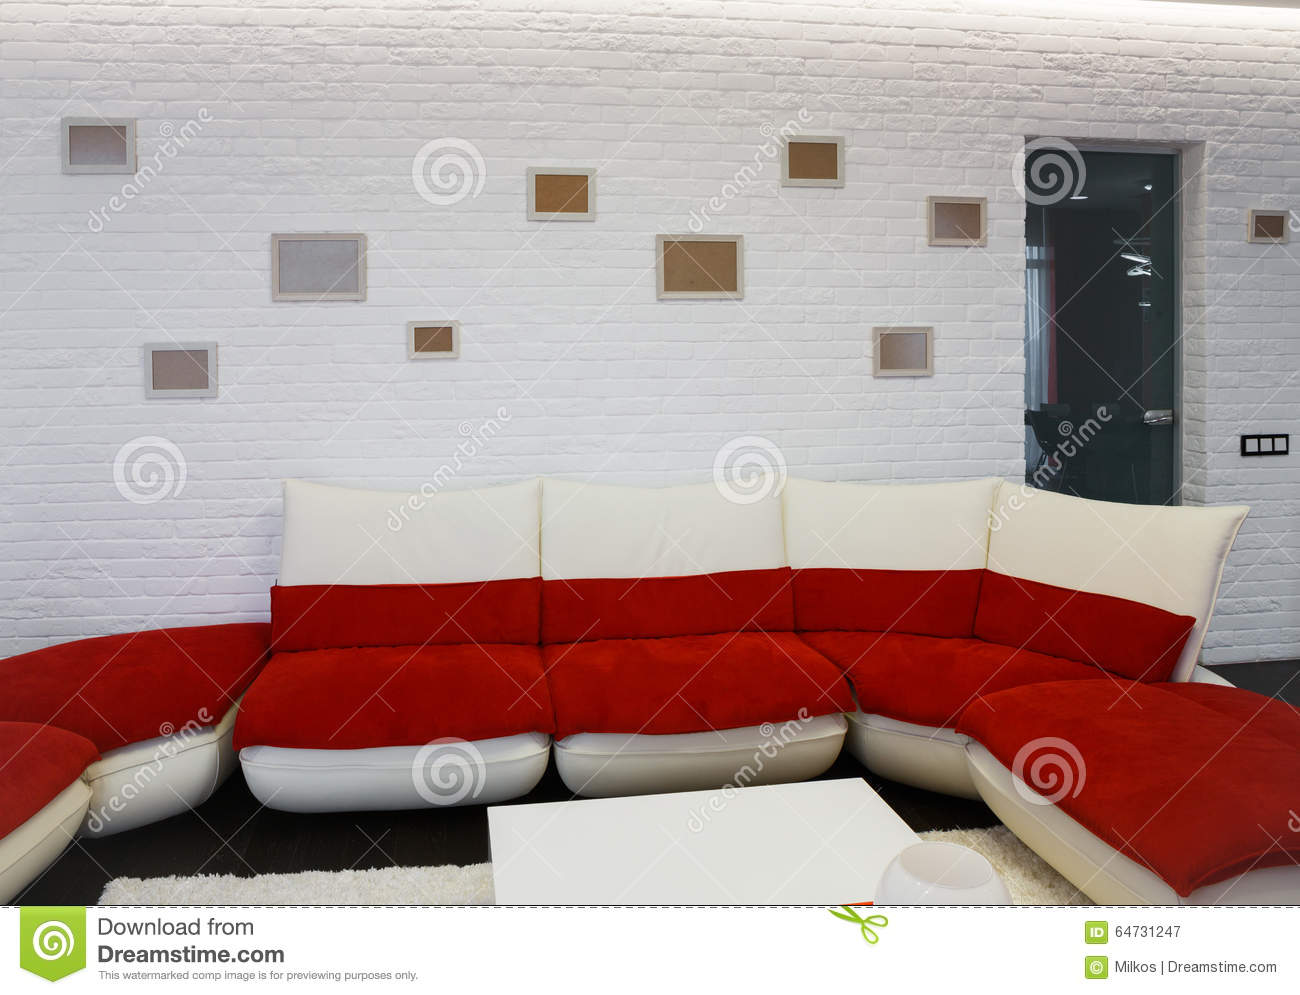 Modern Living Room Interior With Red Sofa Stock Image - Image of ...